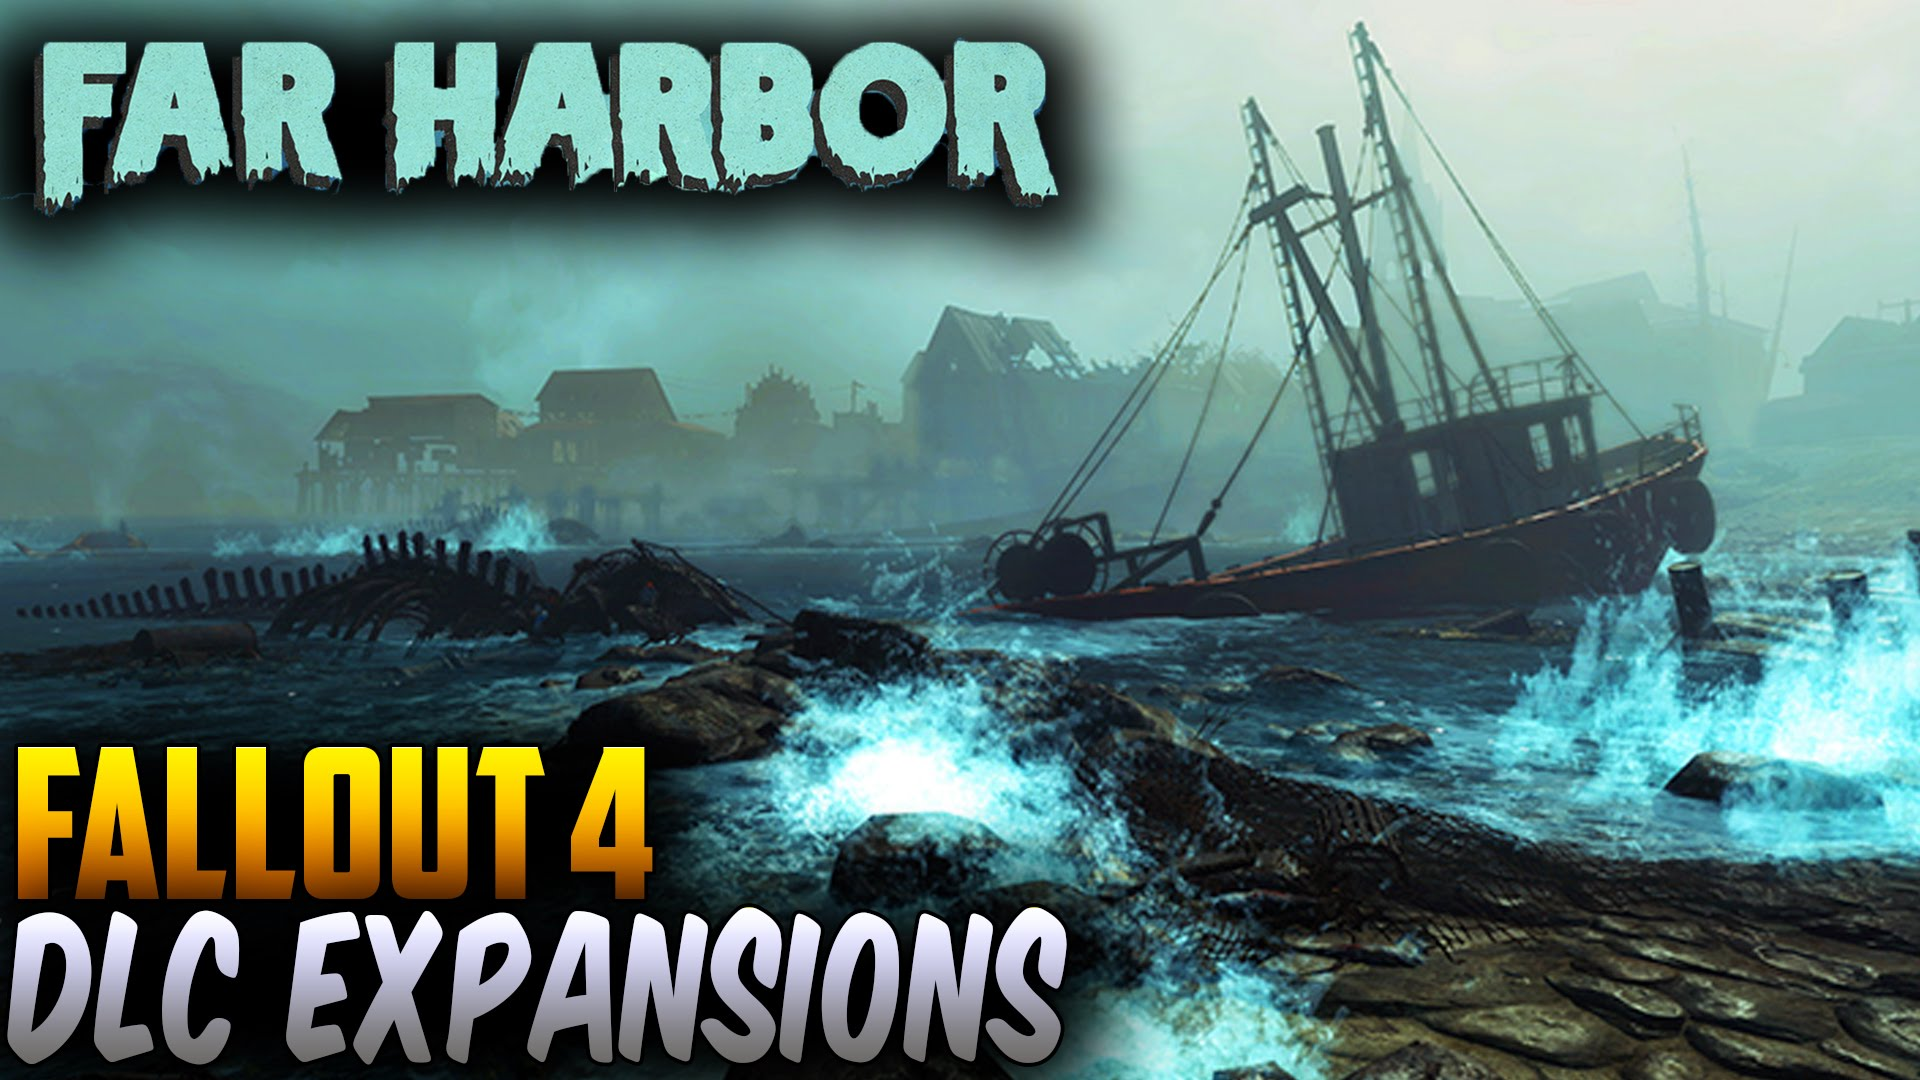 Fallout 4 Far Harbor Dlc Is Ready To Download Mmoexaminer